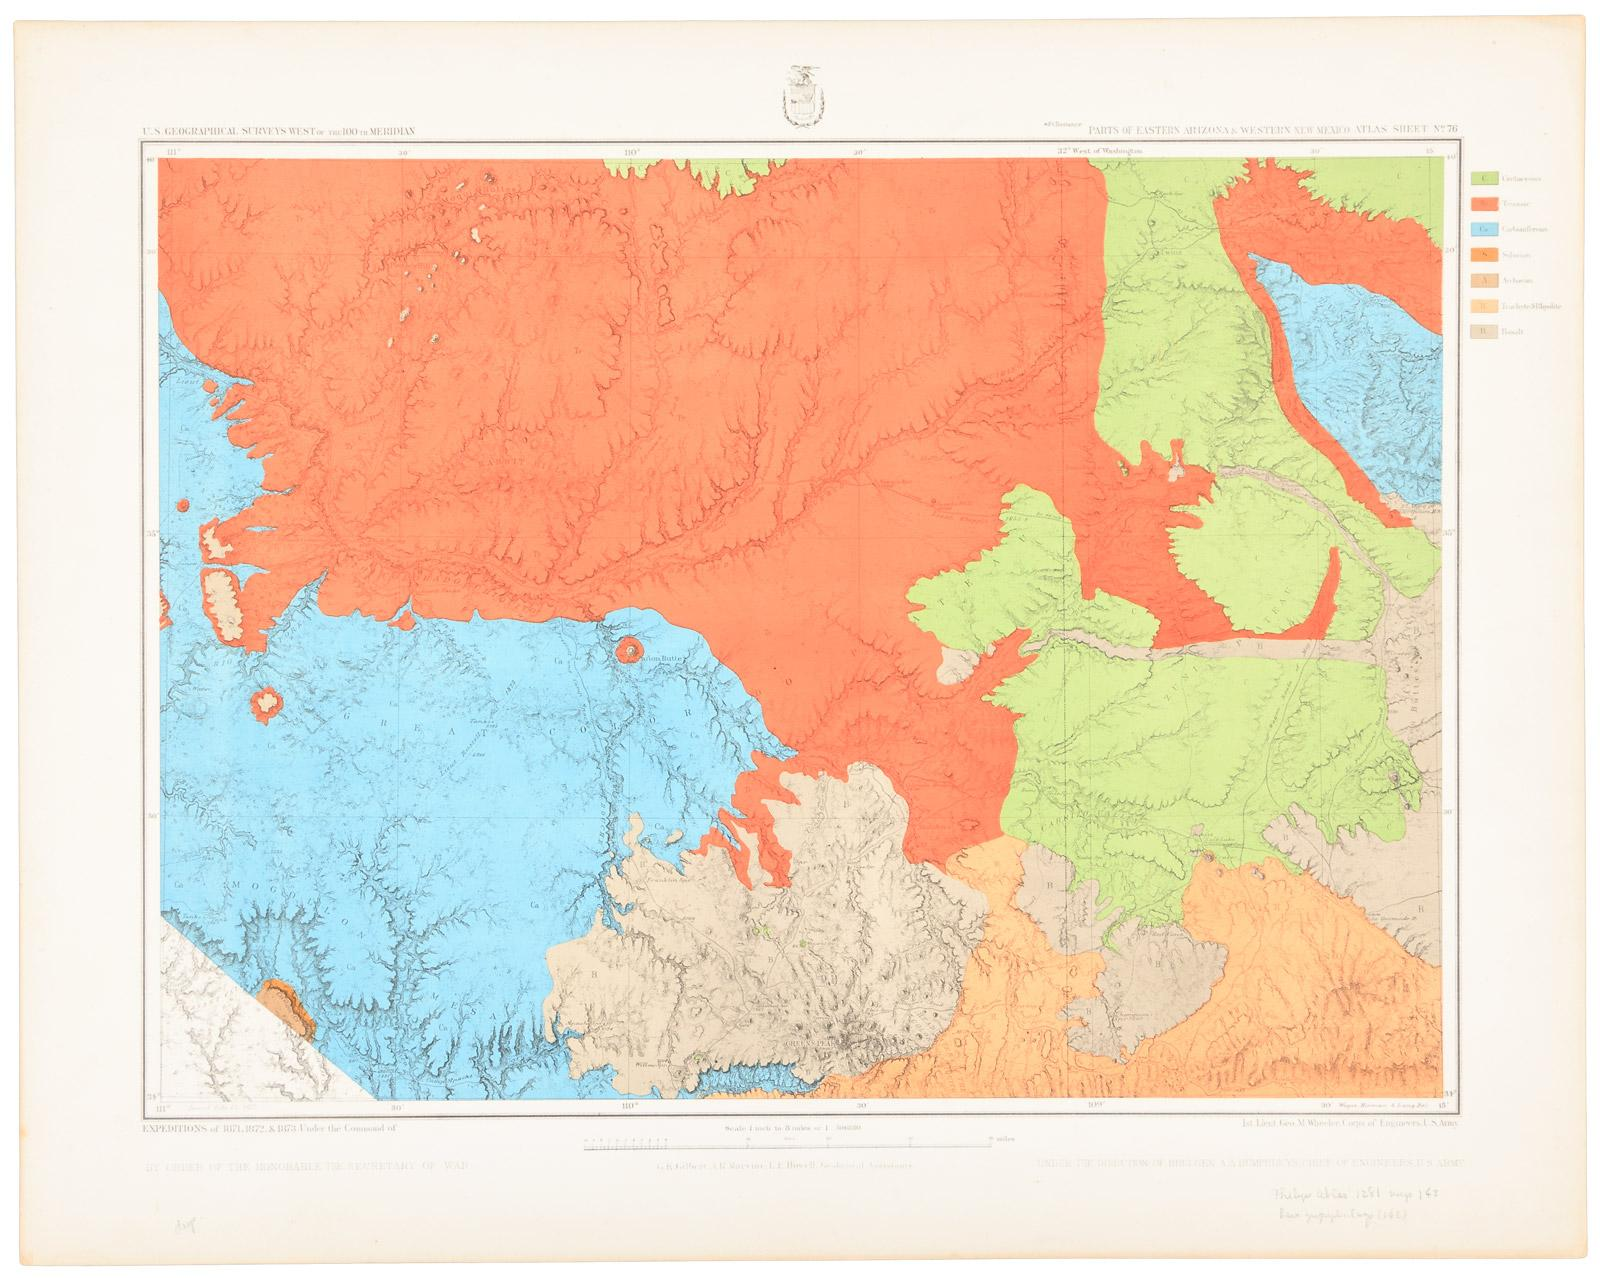 Geographical Map Of Arizona.Three Color Geological Maps Of Parts Of Arizona And New Mexico